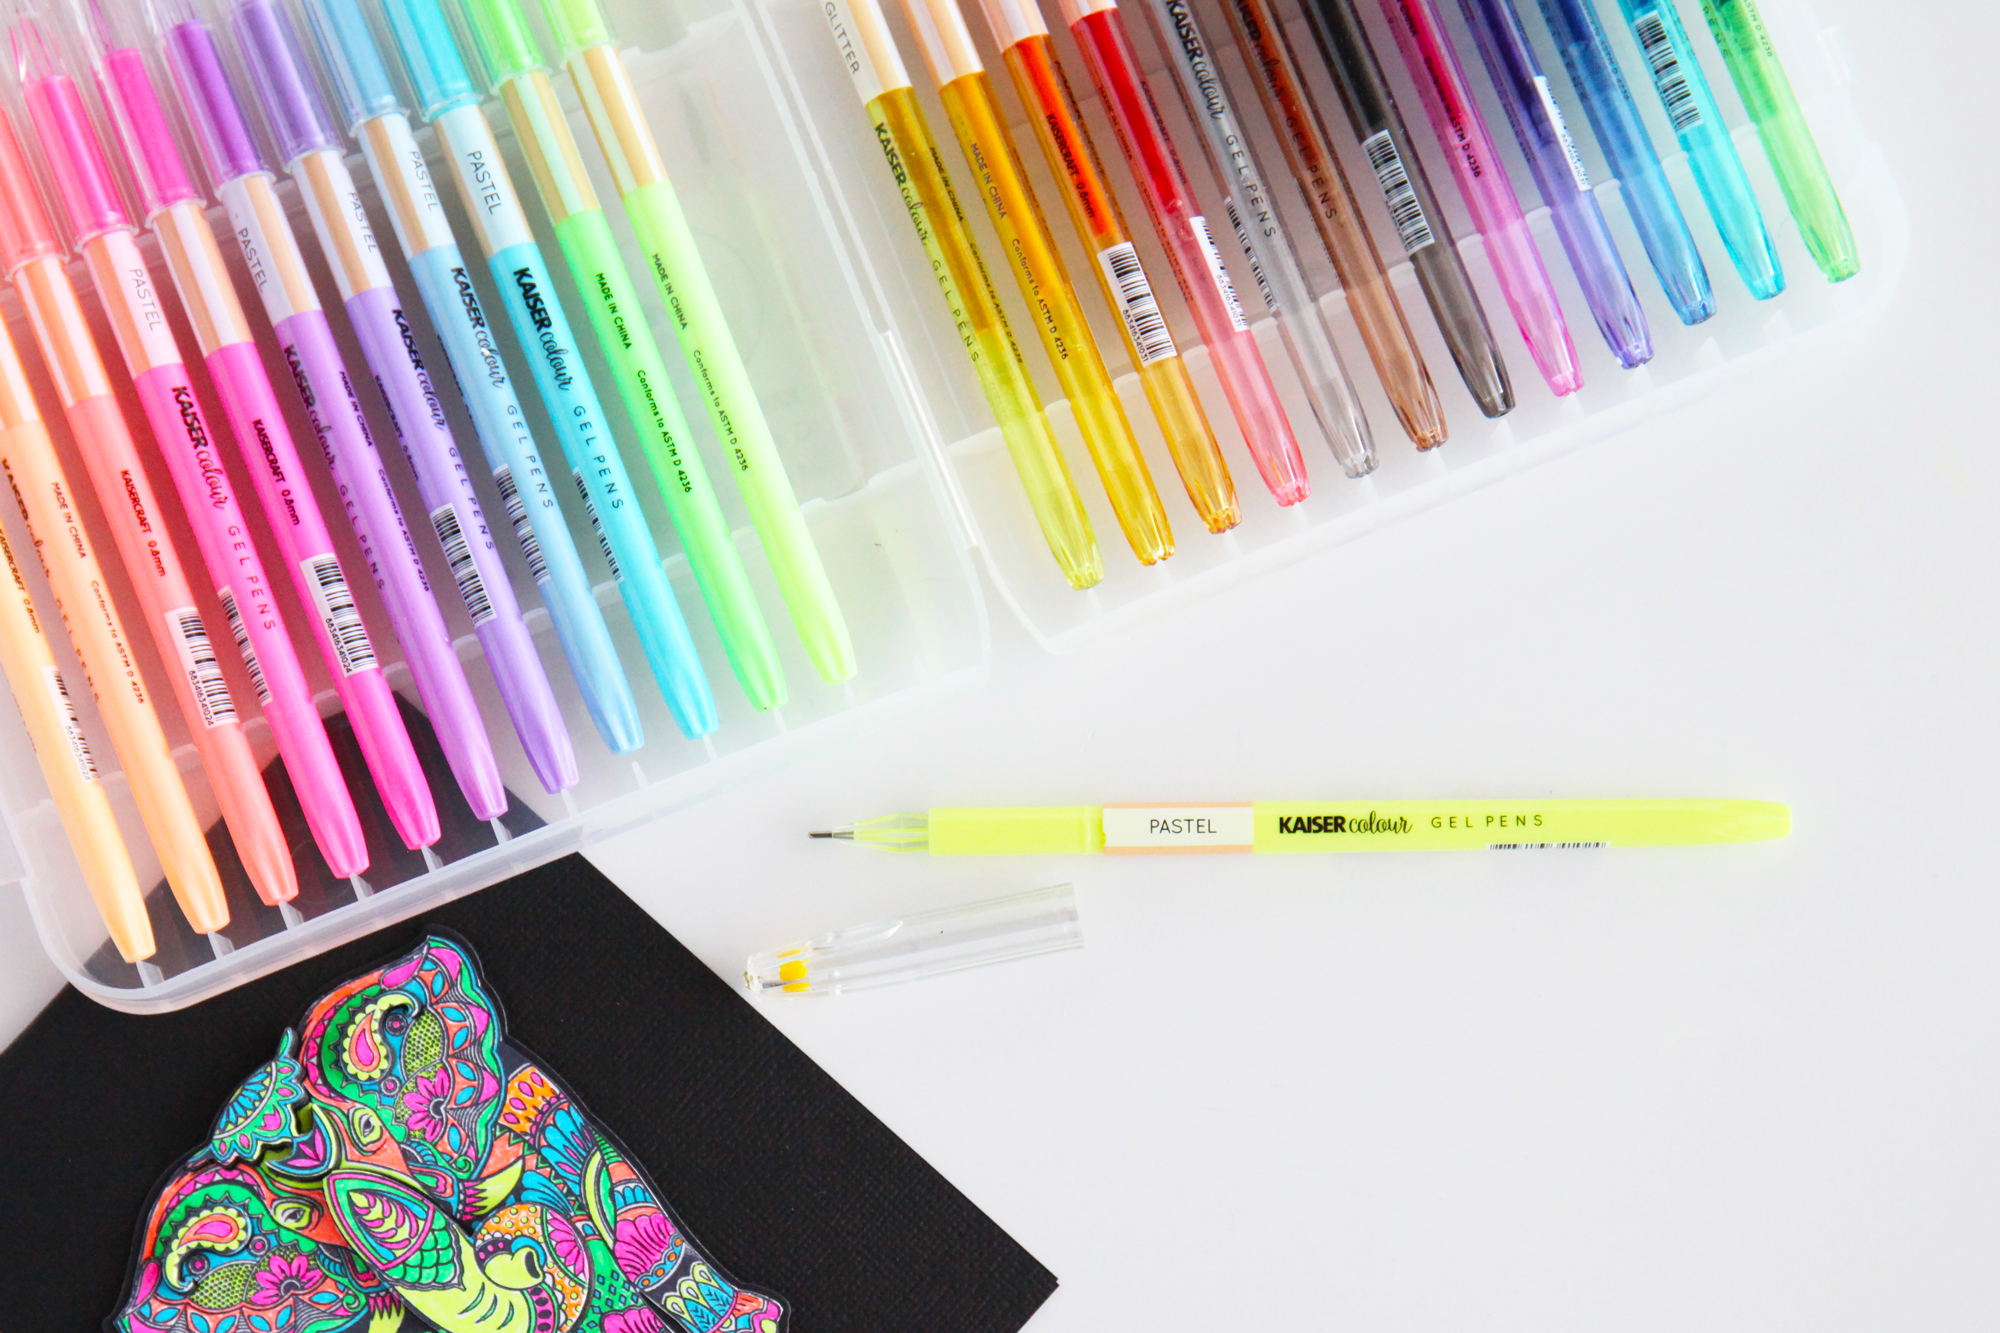 Get coloring with Kaisercraft Kaisercolour Gel Pens!